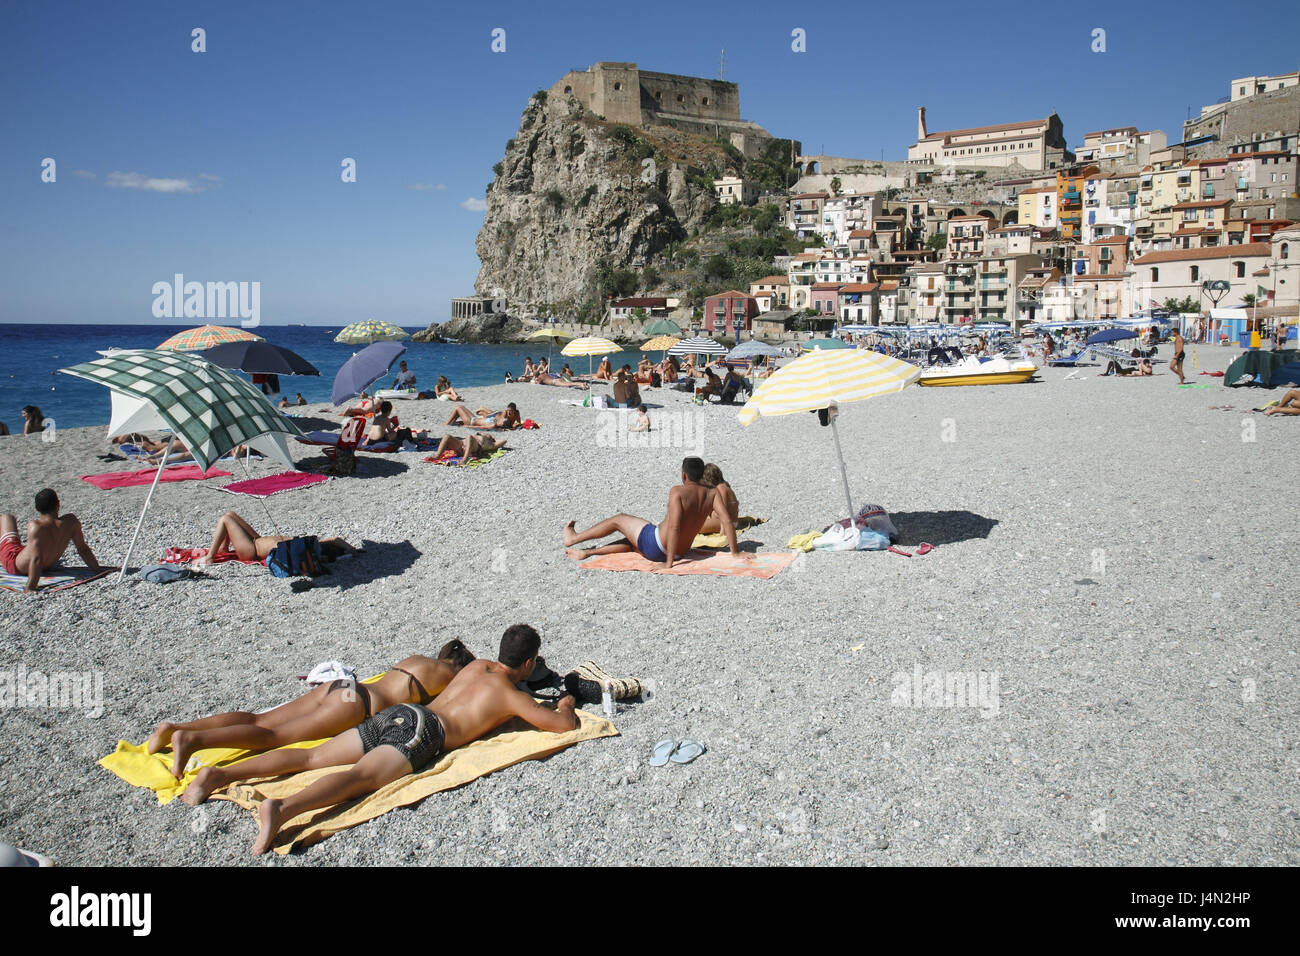 Italy, Calabria, Costa viola, Scilla, beach, tourist, local view, fortress, no model release, coast, place, beach, Stock Photo